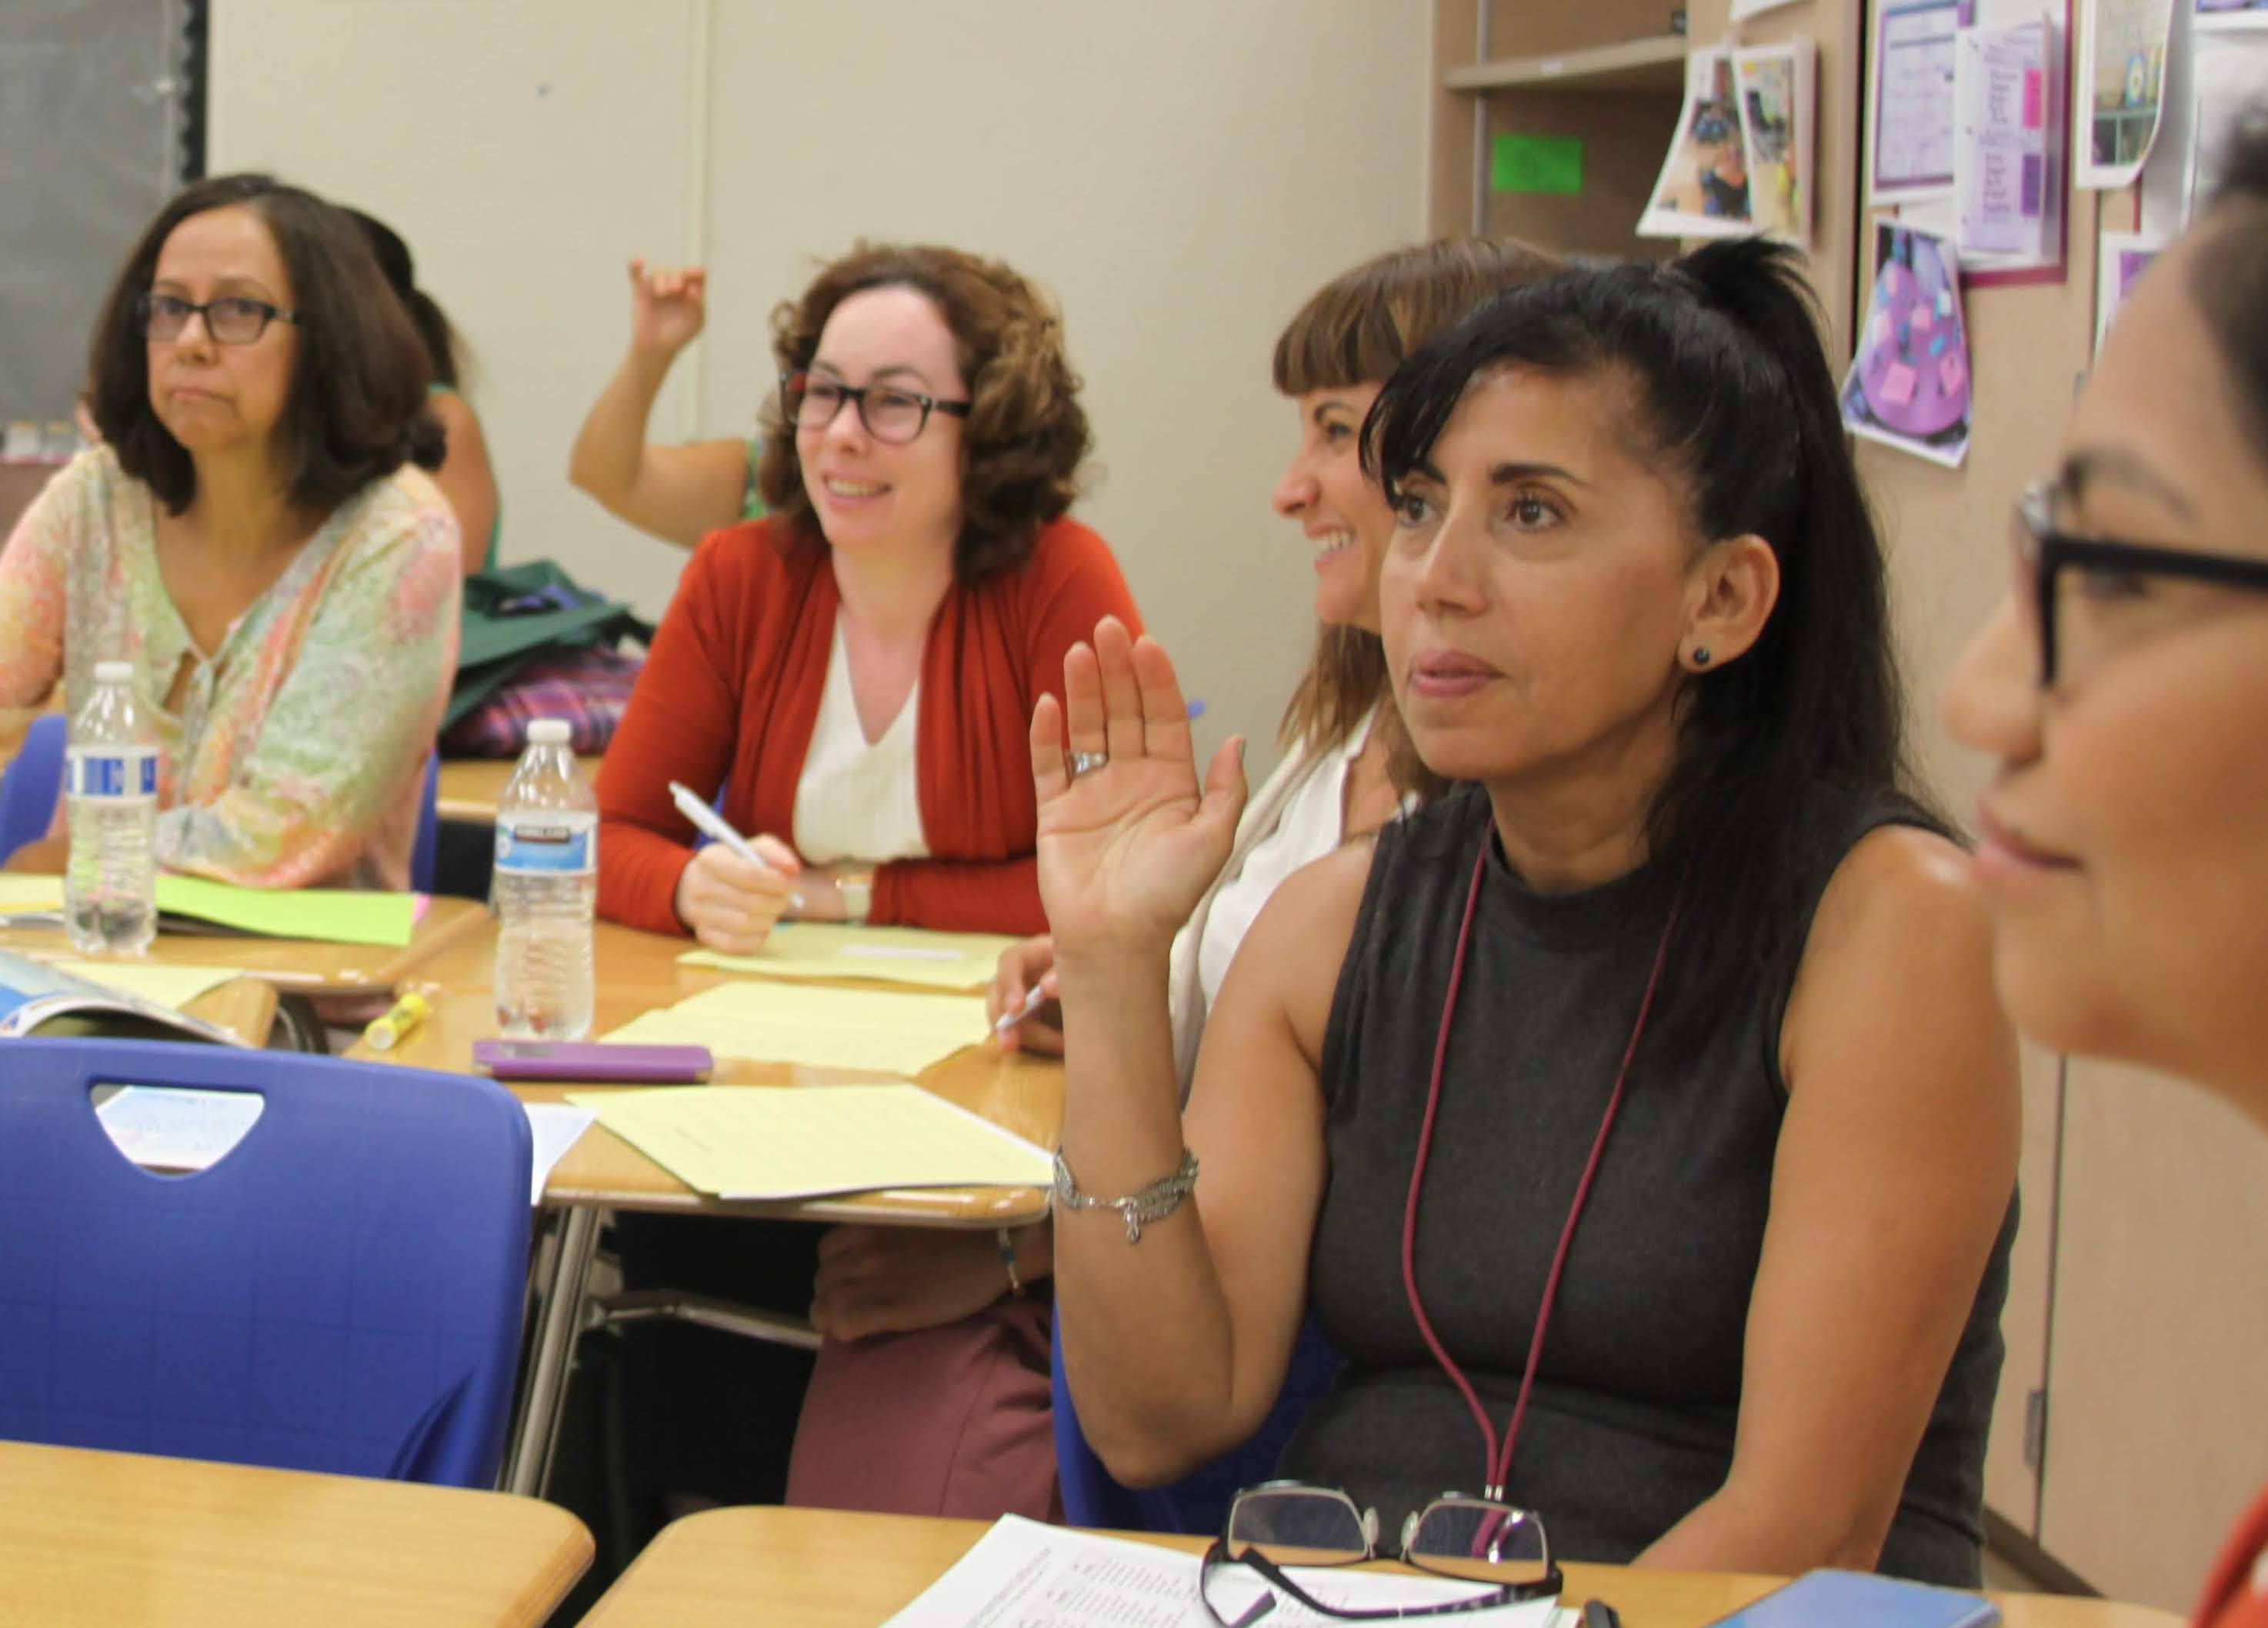 Teachers in professional development programs at Florida's School District of Palm Beach County benefit from the school system's close working relationship the regions colleges and universities.